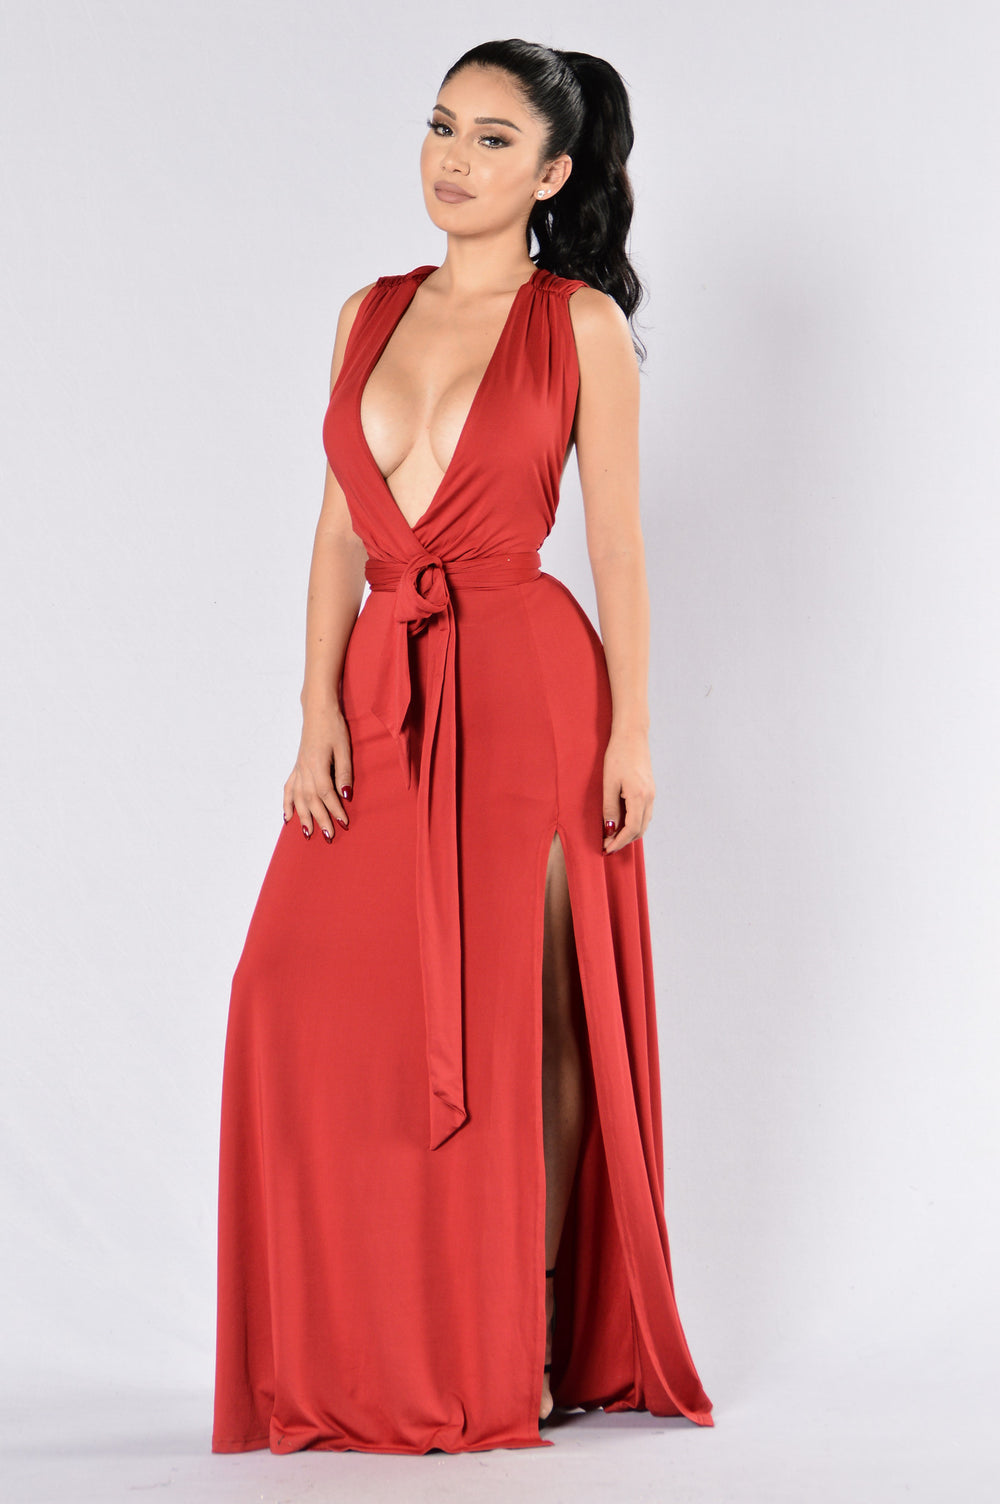 Divine Sorrow Dress - Burgundy